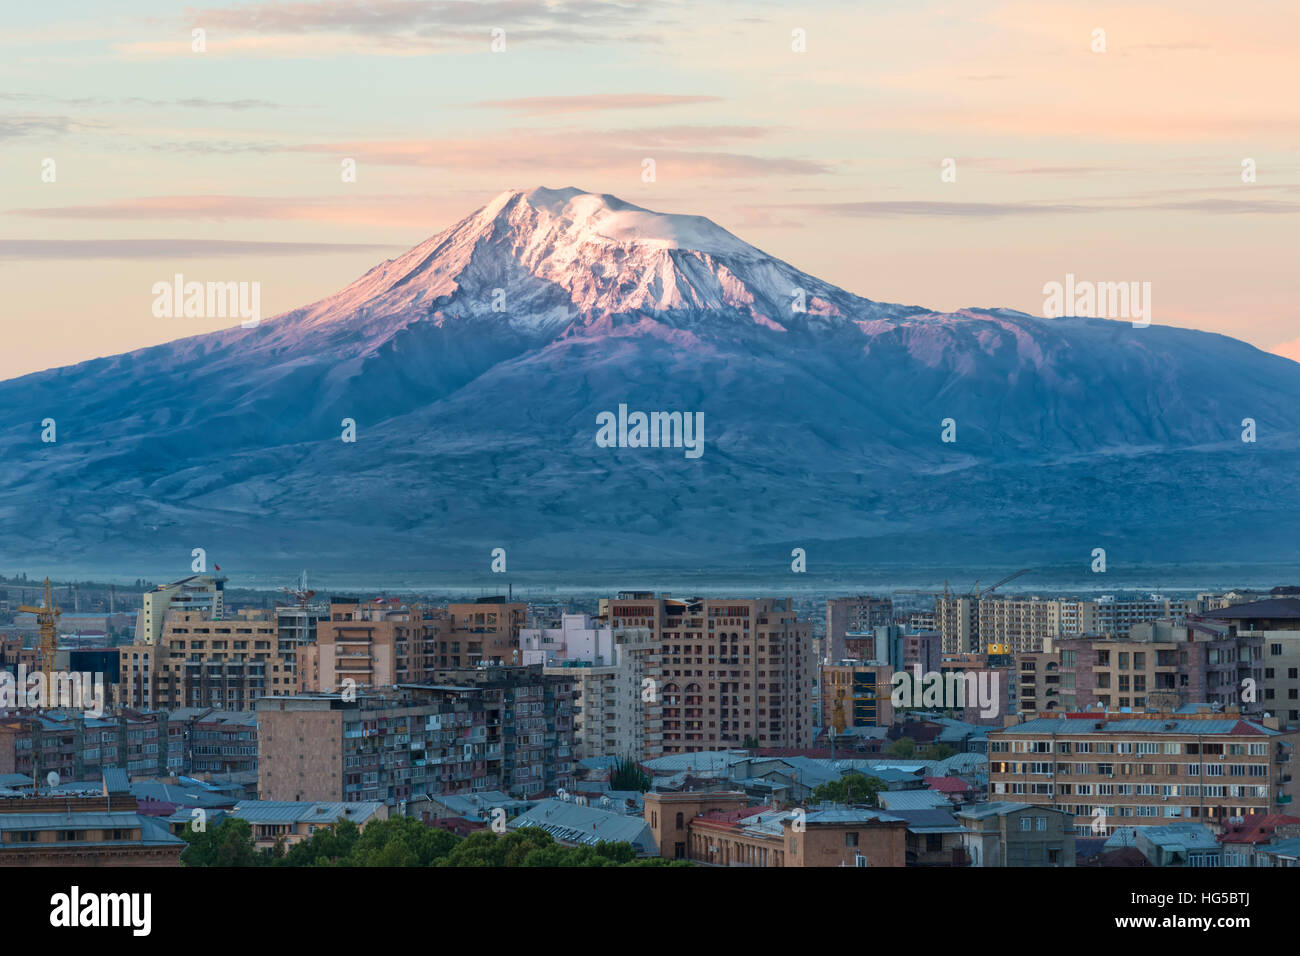 Mount Ararat and Yerevan viewed from Cascade at sunrise, Yerevan, Armenia, Cemtral Asia, Asia - Stock Image